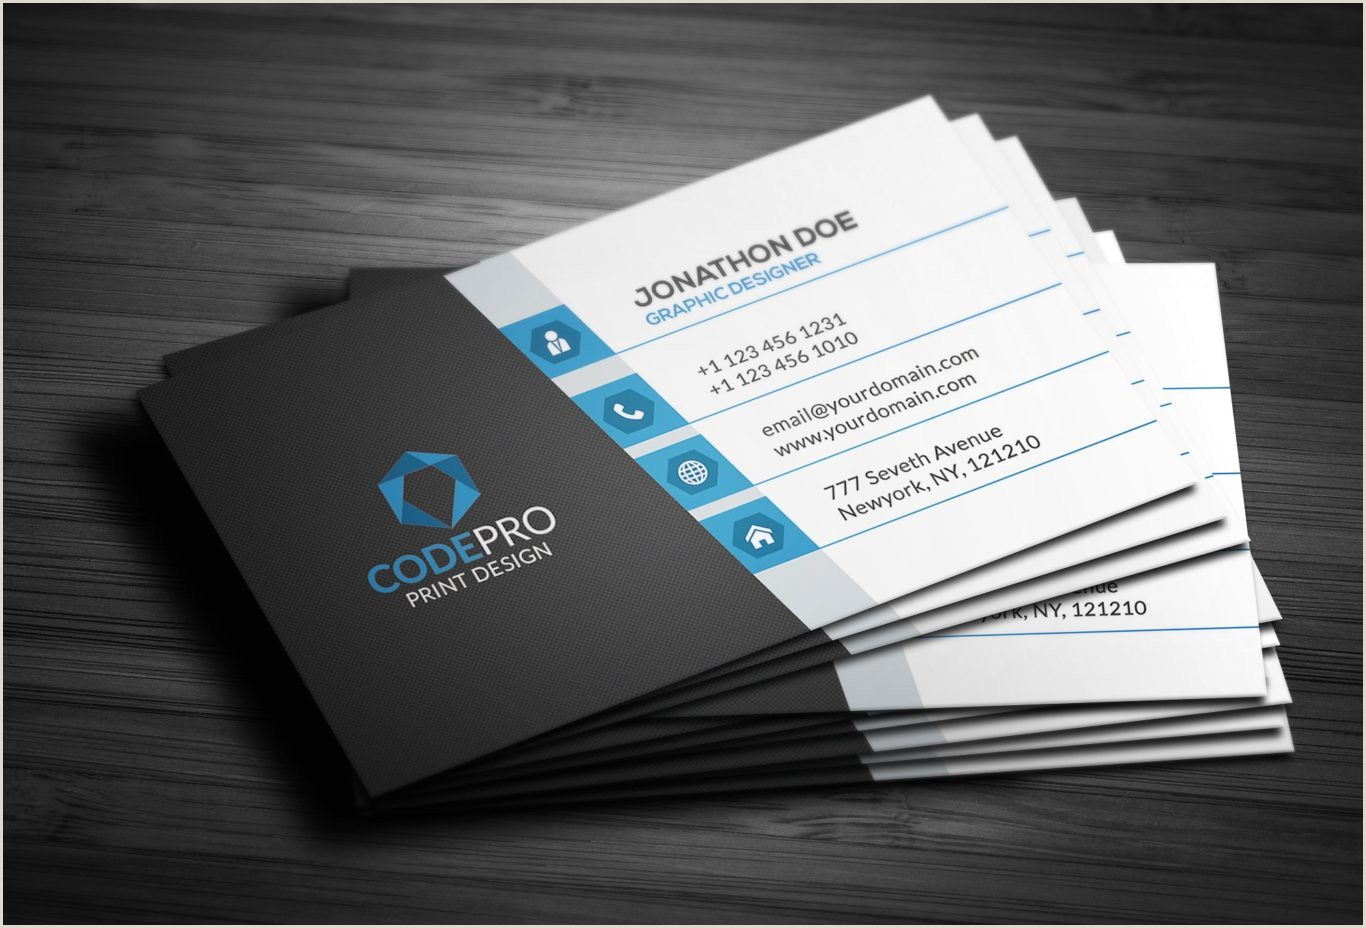 Information To Put On Business Cards What Information To Put On A Business Card Blog